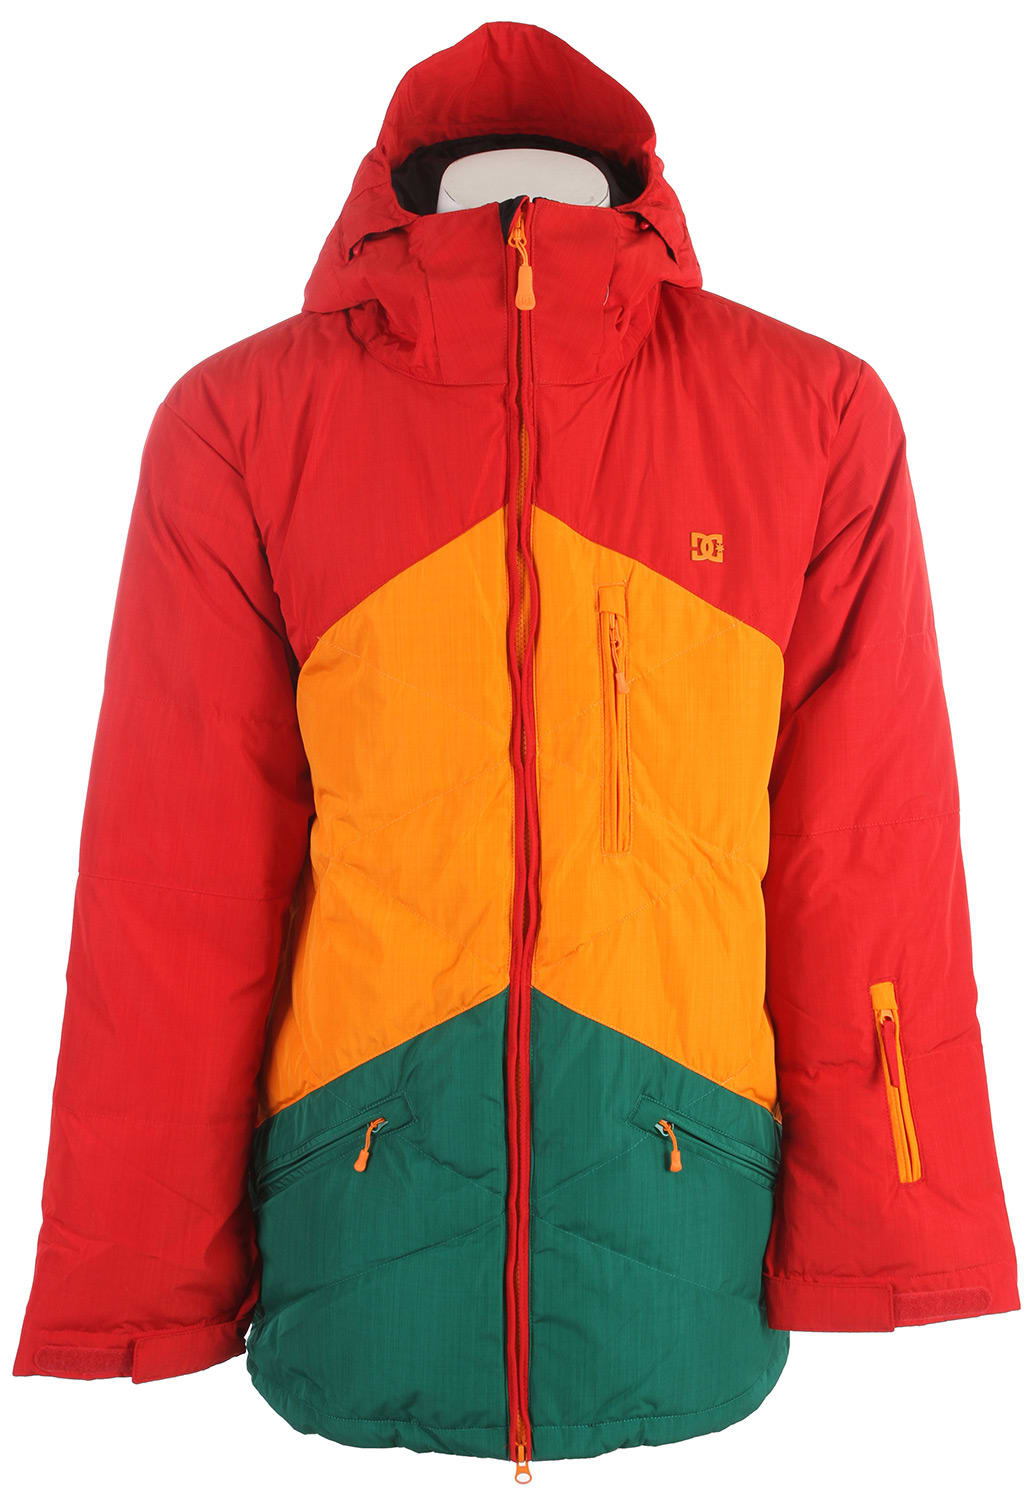 Our ski jackets sale page has narrowed it down for you by fit: Slim, Regular and Relaxed, making it easy to choose the right jacket for you! Slim Fit Jackets: Slim fit jackets are designed to sit closer to the body.